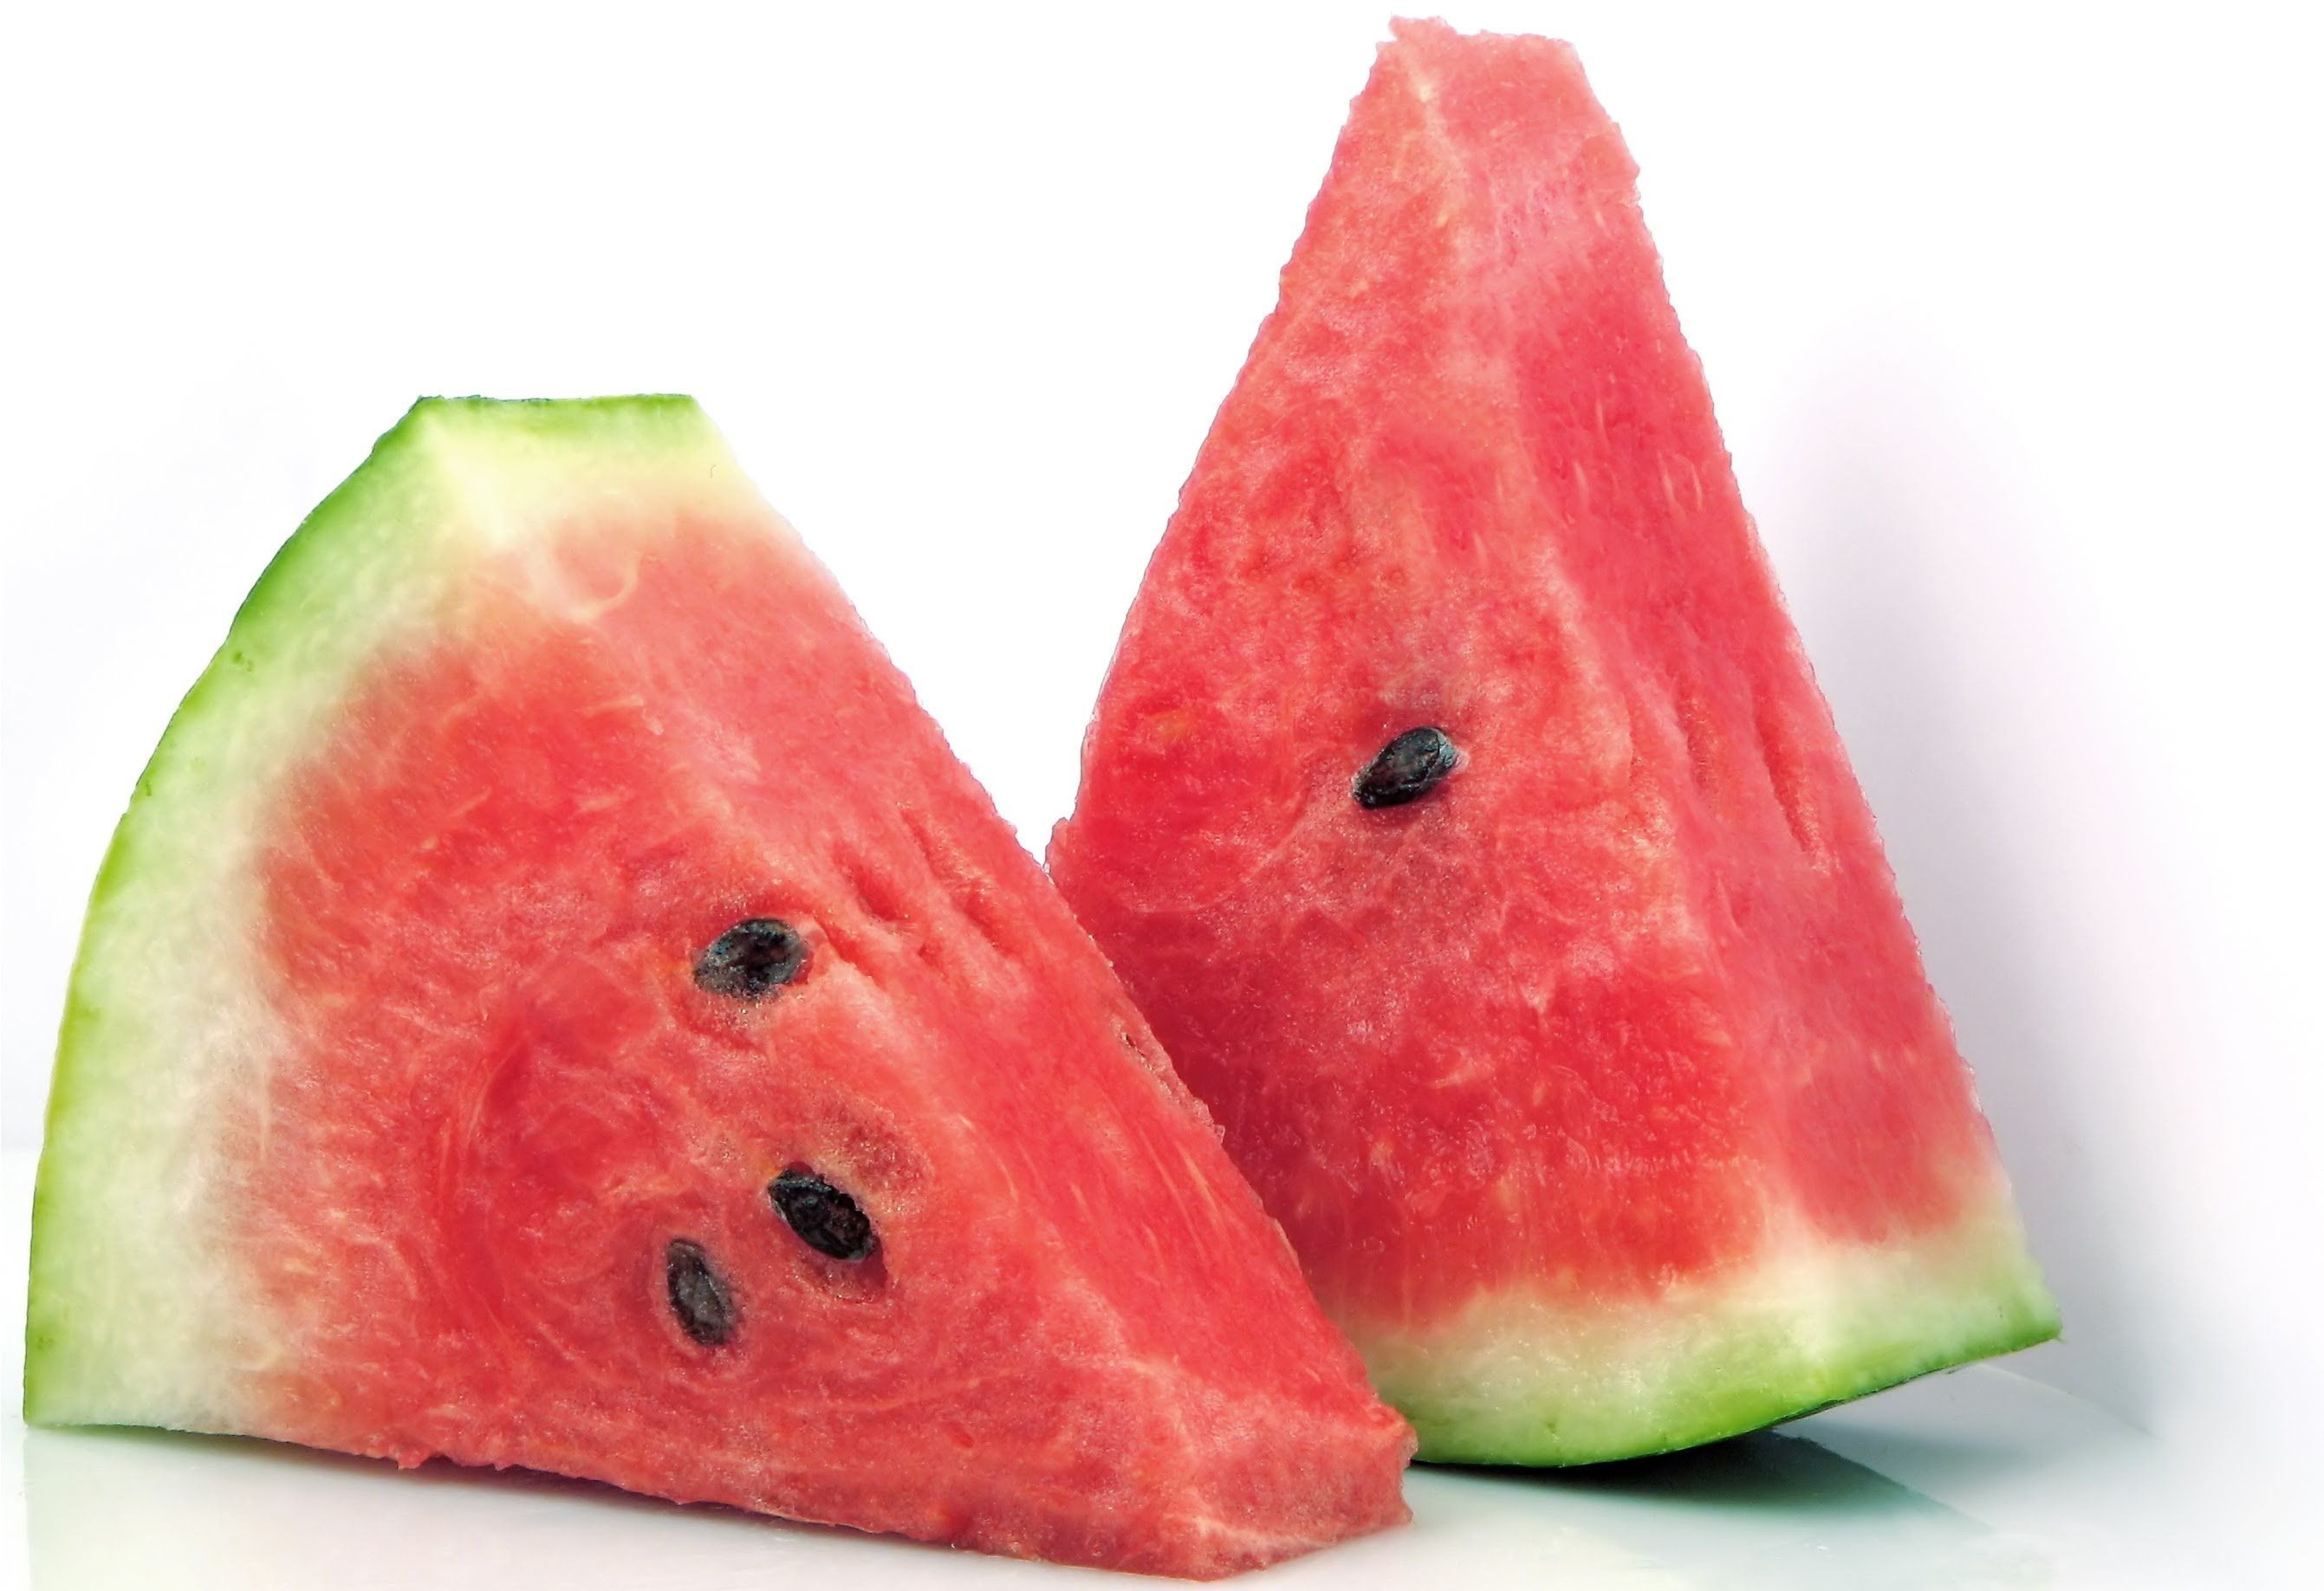 Wettermelon (Watermelon) eJuice Review made by FNVapes